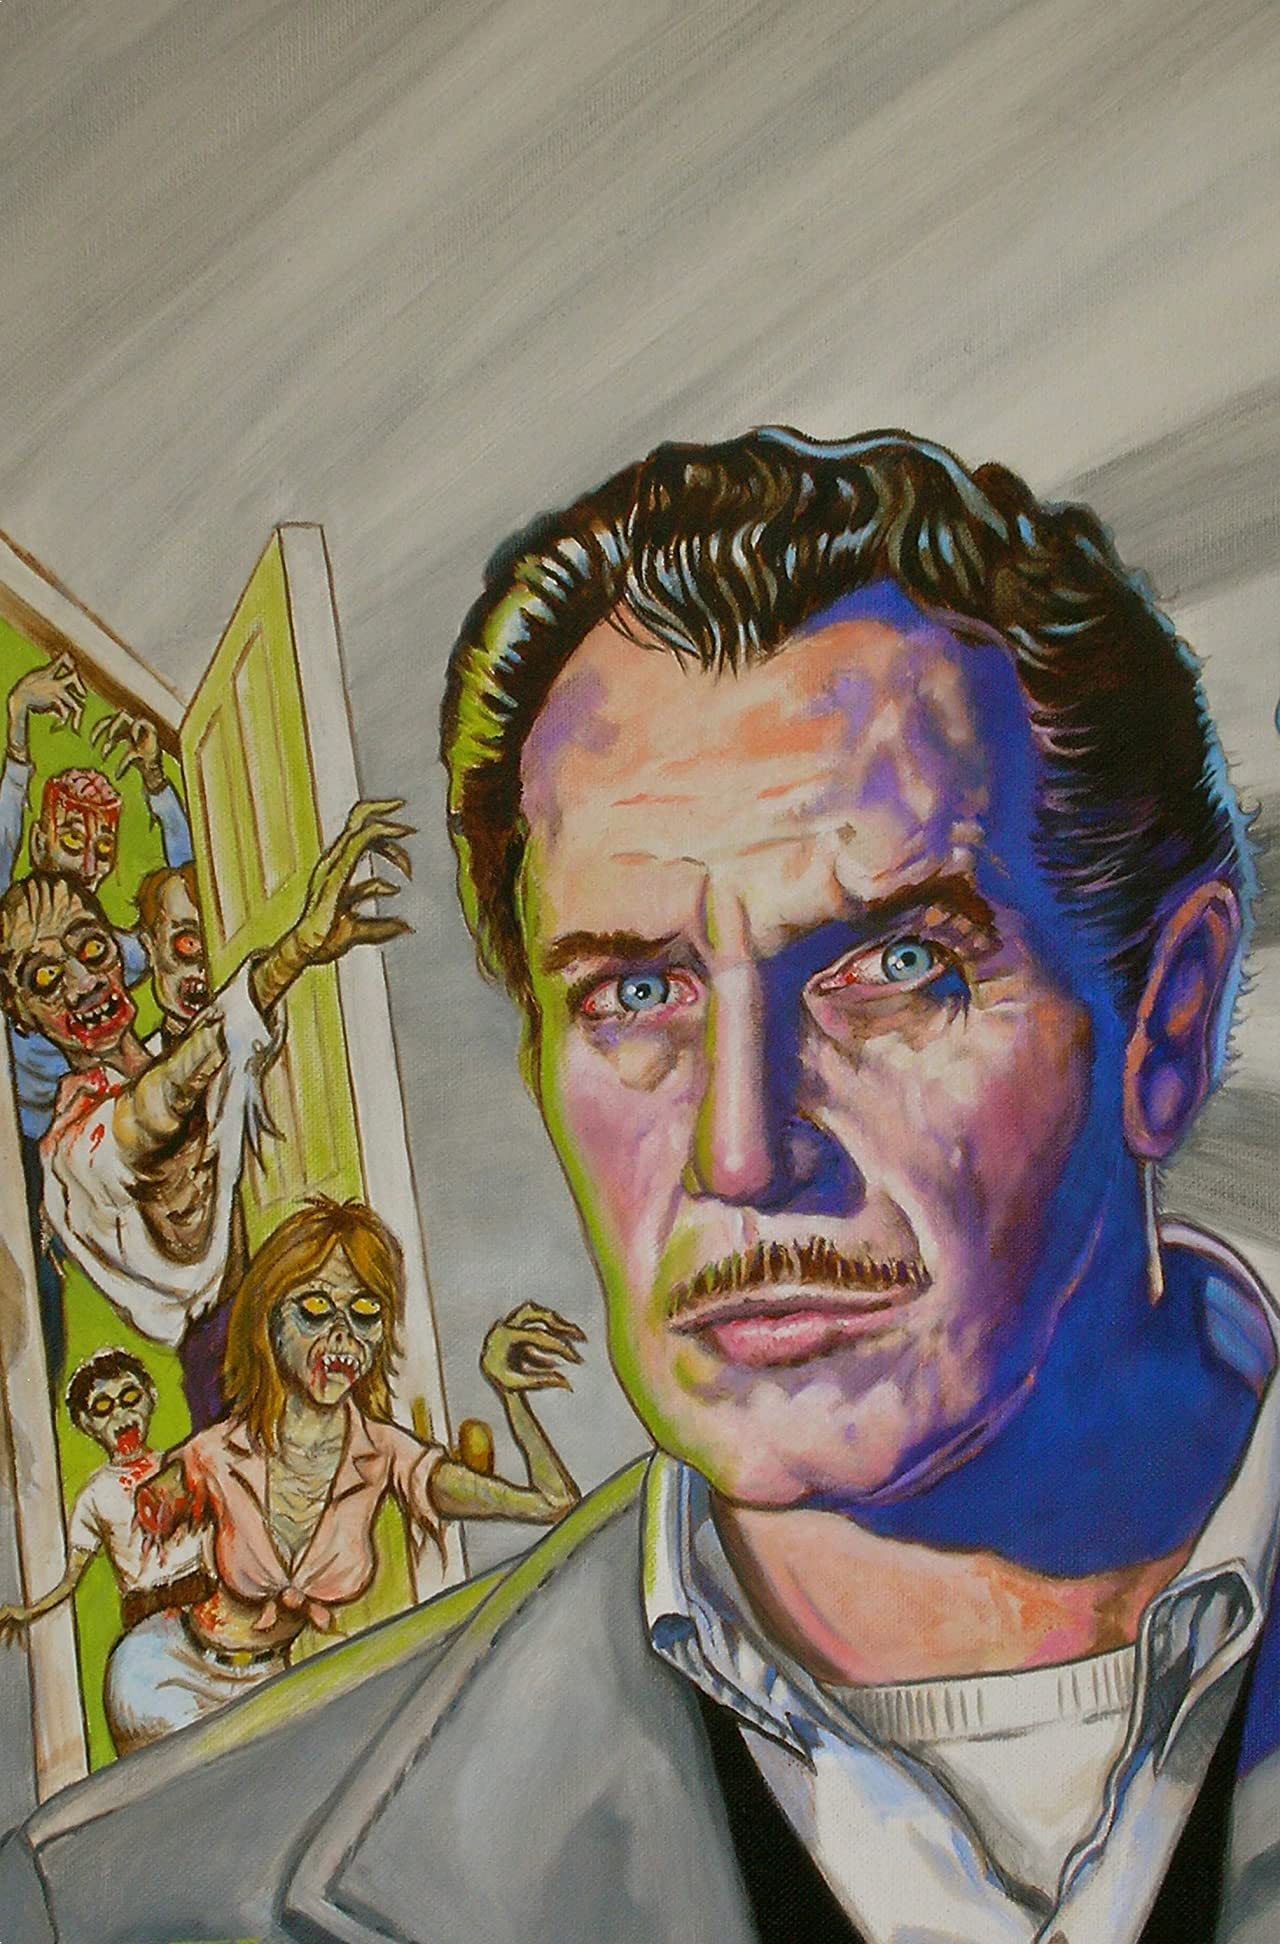 Vincent Price: Gallery #4